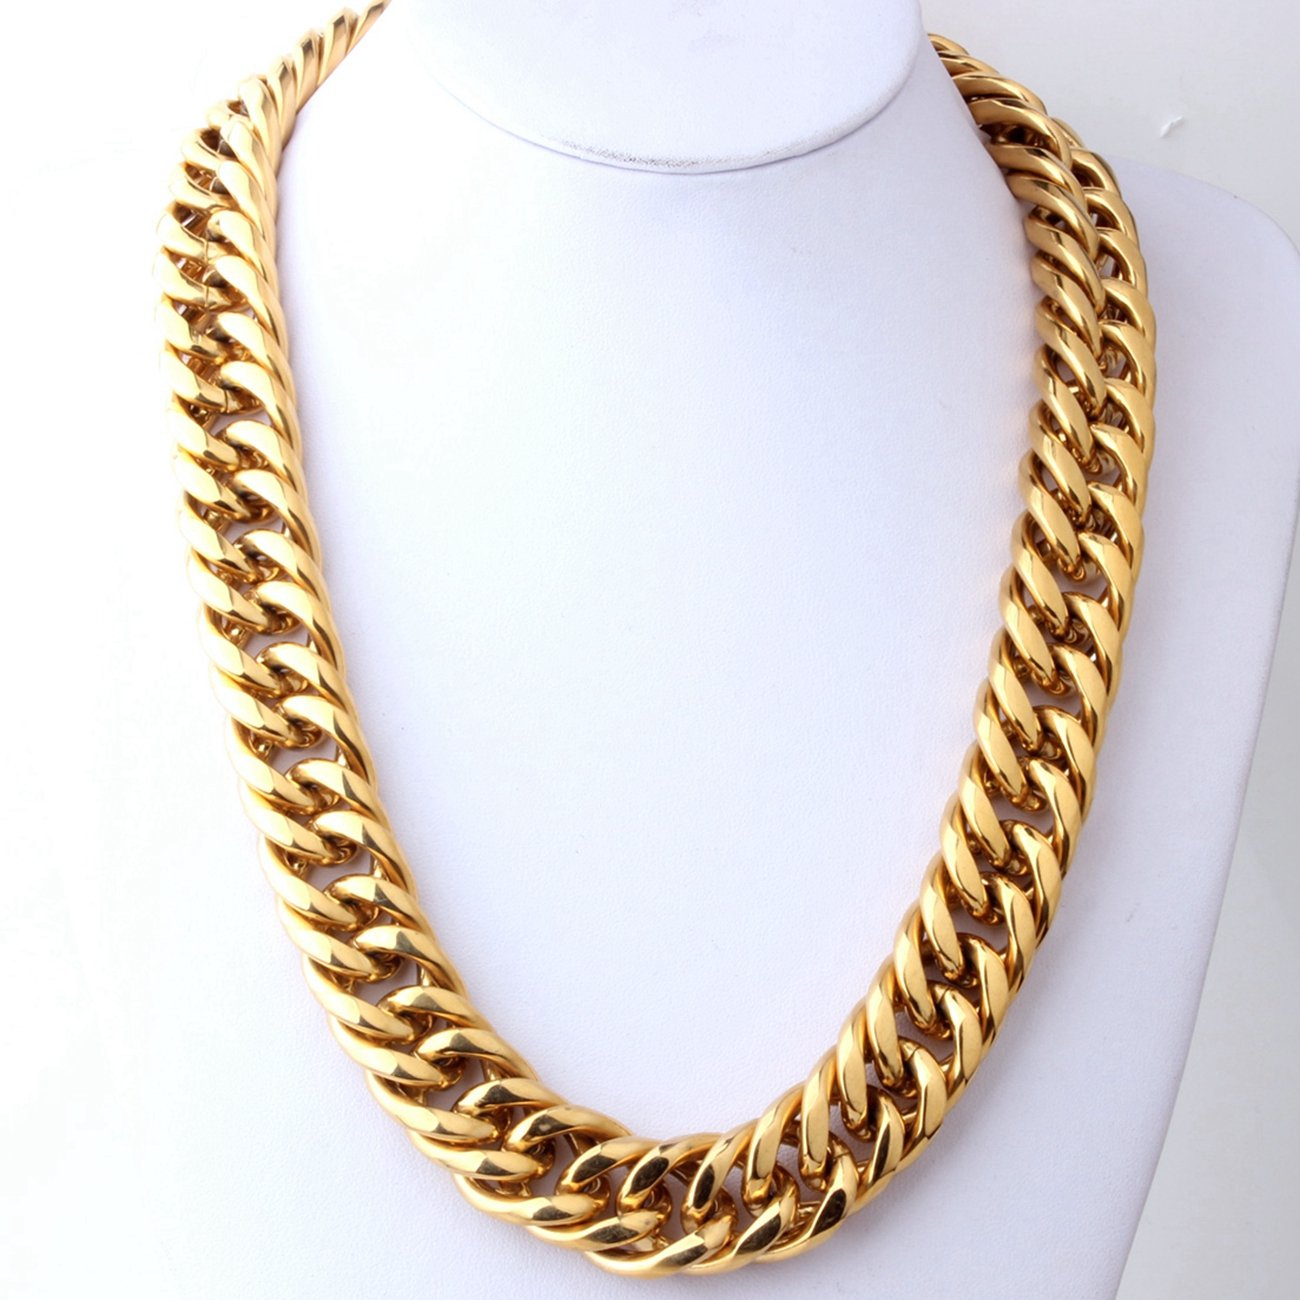 Innovative jewelry Strong Mens Gold Plated Necklace Bracelet 22mm Stainless Steel Curb Link Chain,8-40